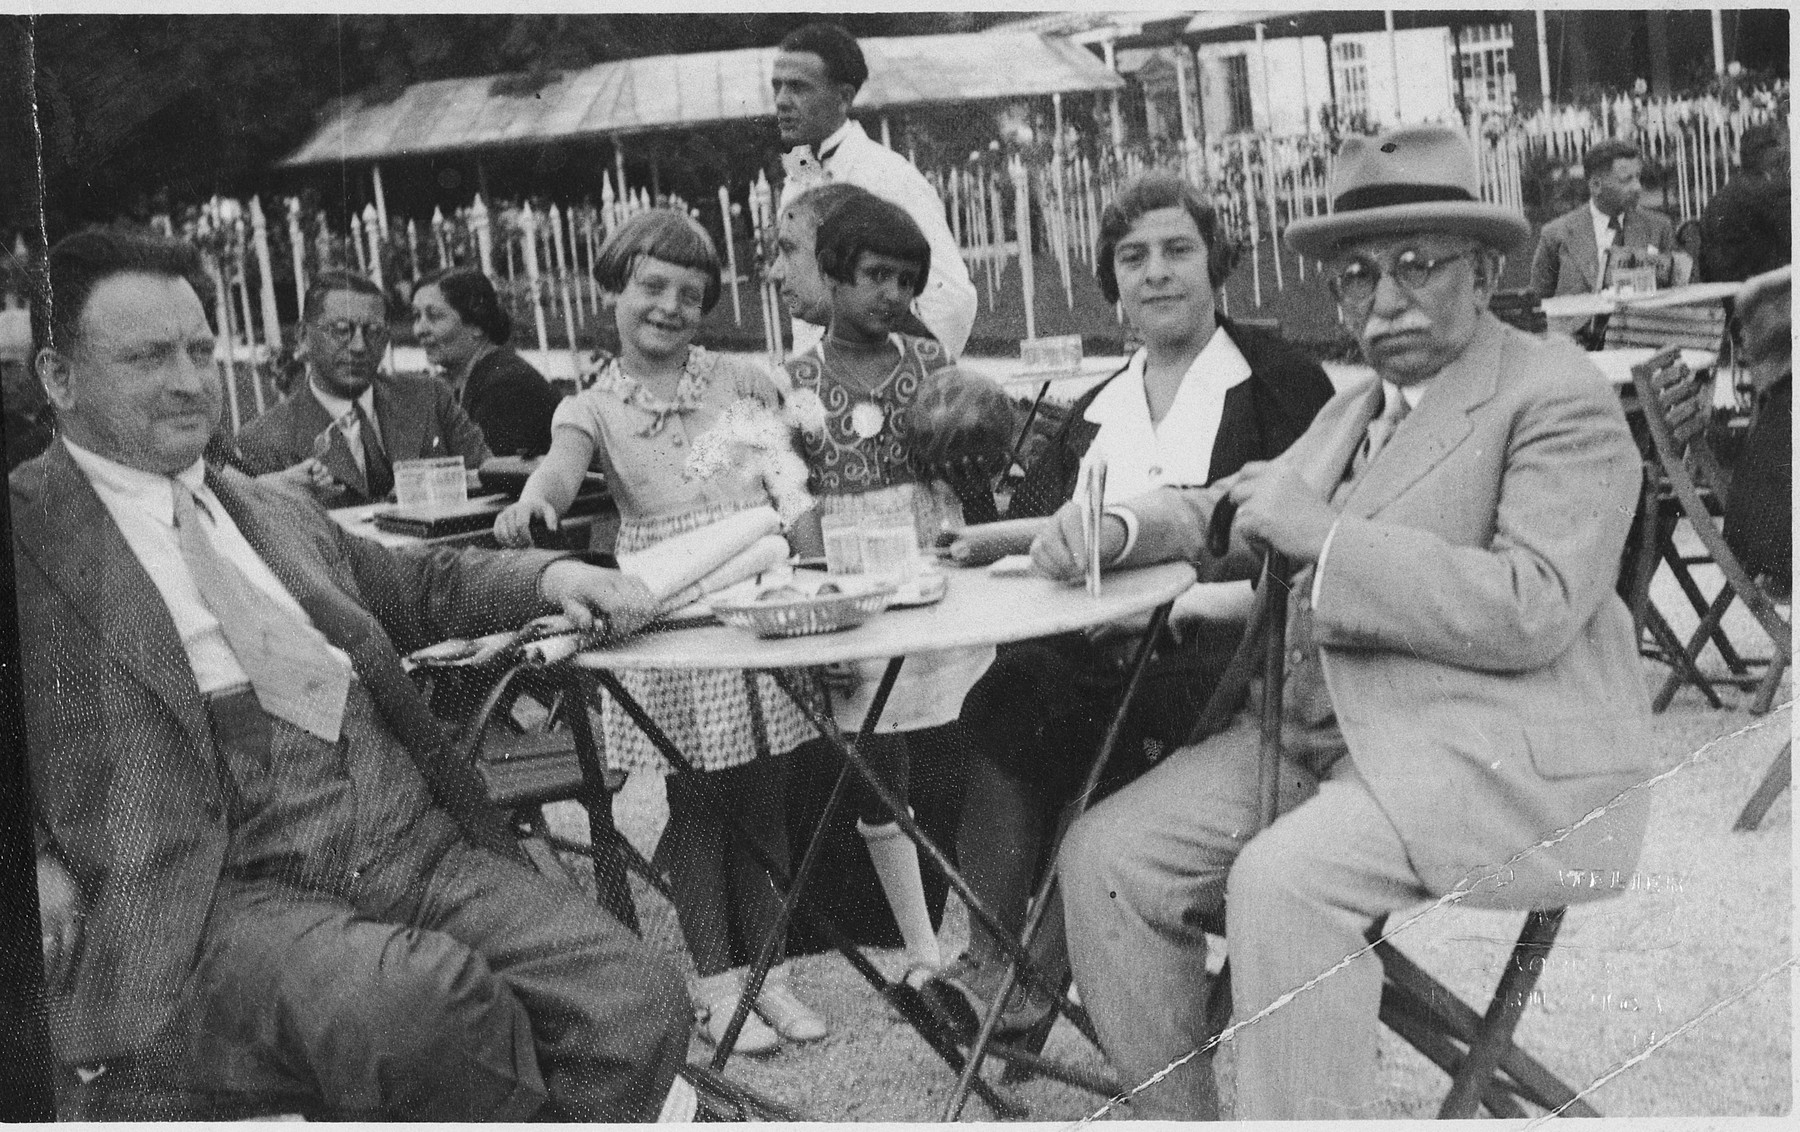 The Wessel family enjoys a visit to an outdoor cafe.  Pictured from left to right are Samuel Wessel, his daughter Roma, a friend, his wife Rosa and another friend or relative.